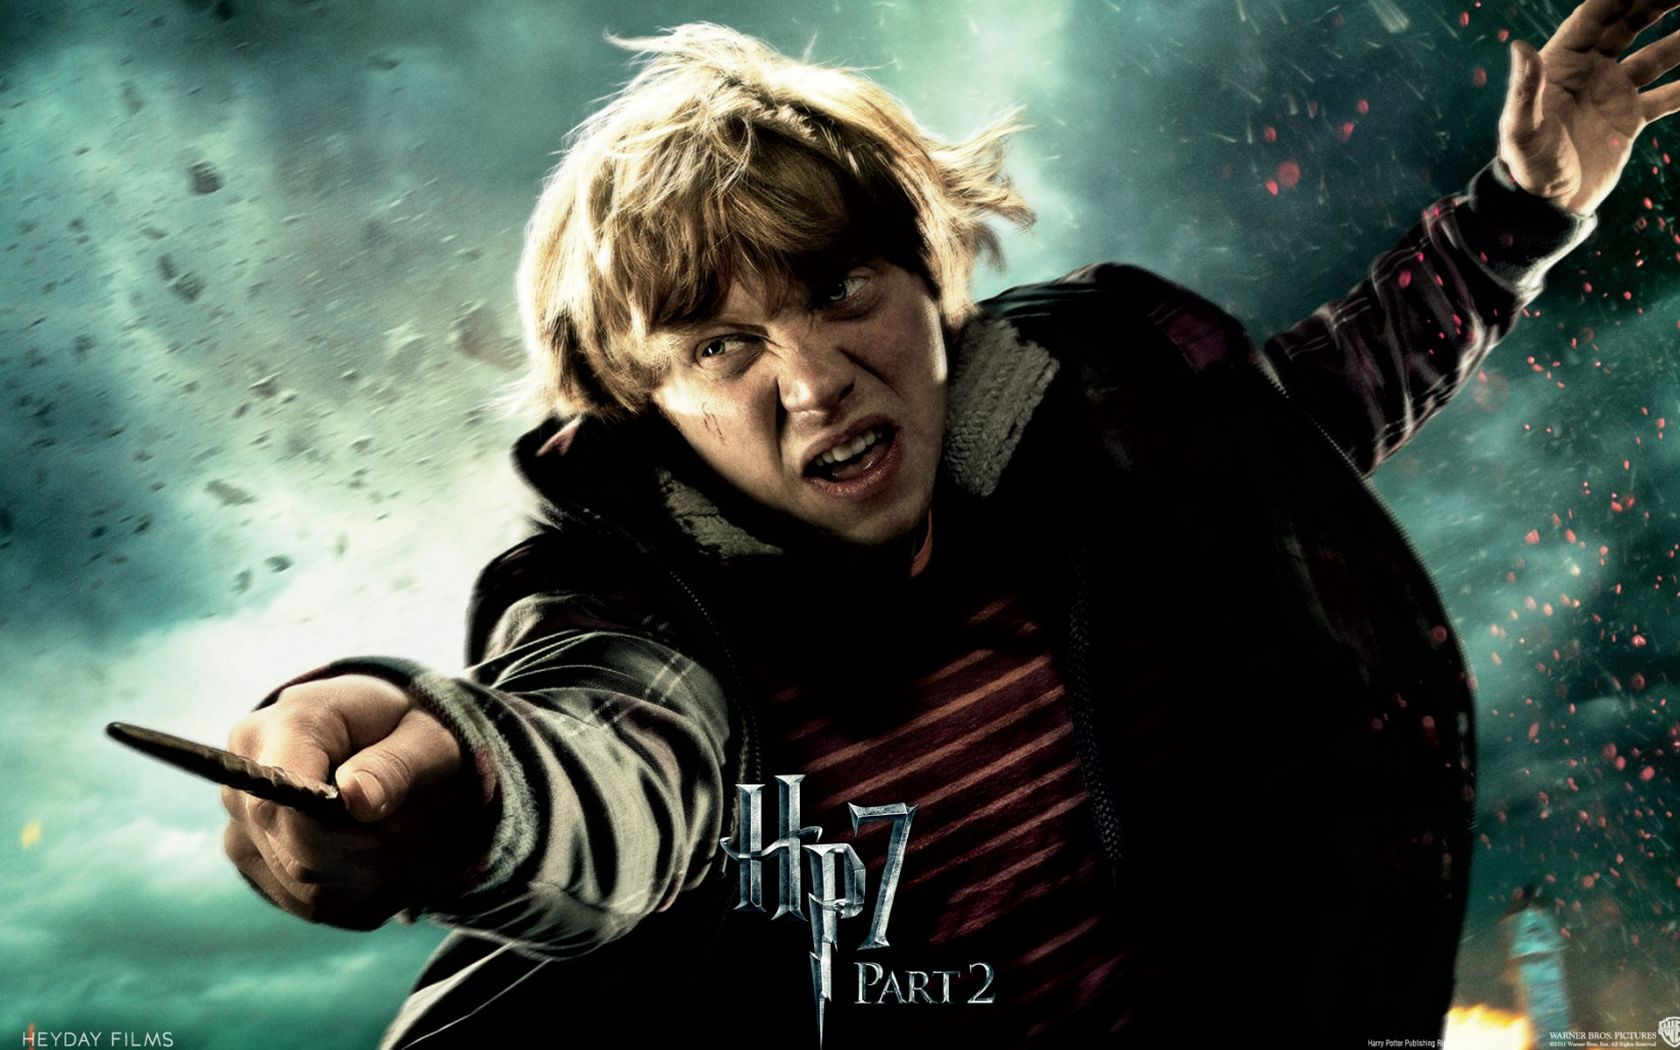 hp7_part_2_ron-wallpaper-1680x1050.jpg